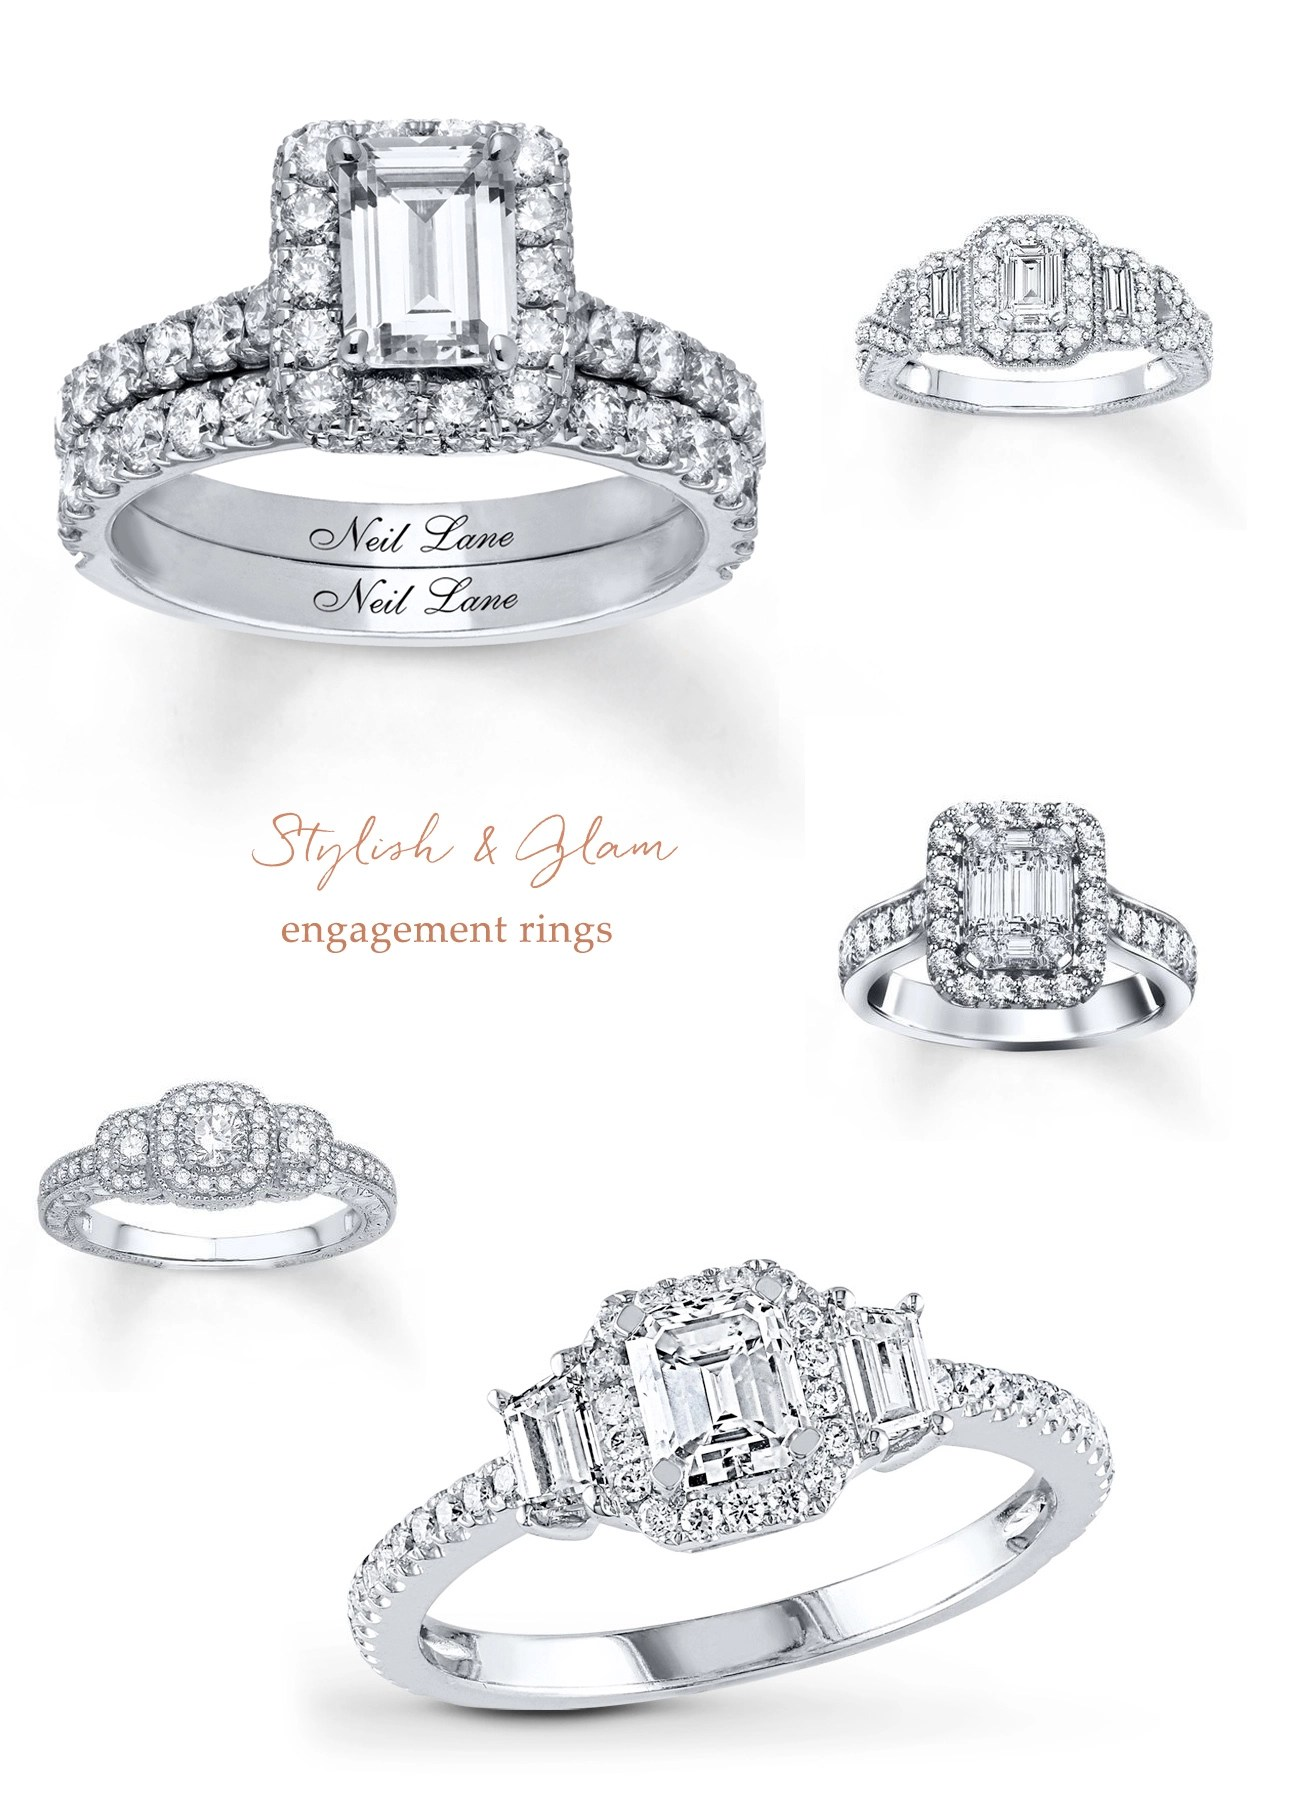 find your engagement ring style with jared jared wedding rings glam engagement rings from Jared